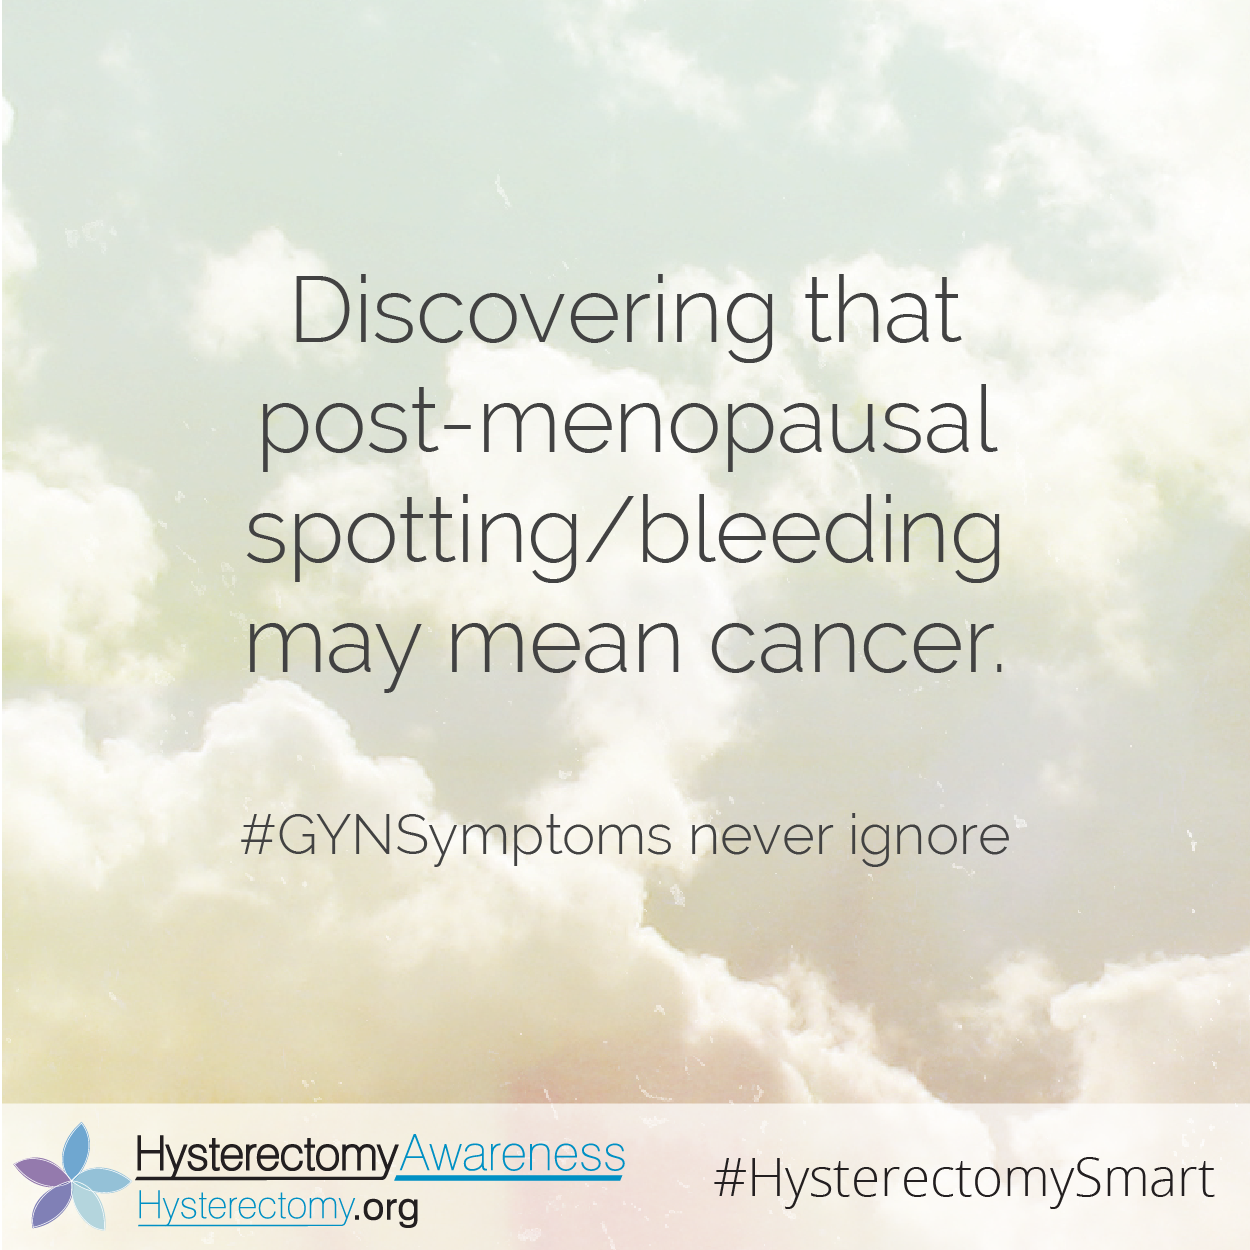 Discovering that post-menopausal spotting/bleeding may mean cancer. #GYNSymptoms never ignore #HysterectomySmart